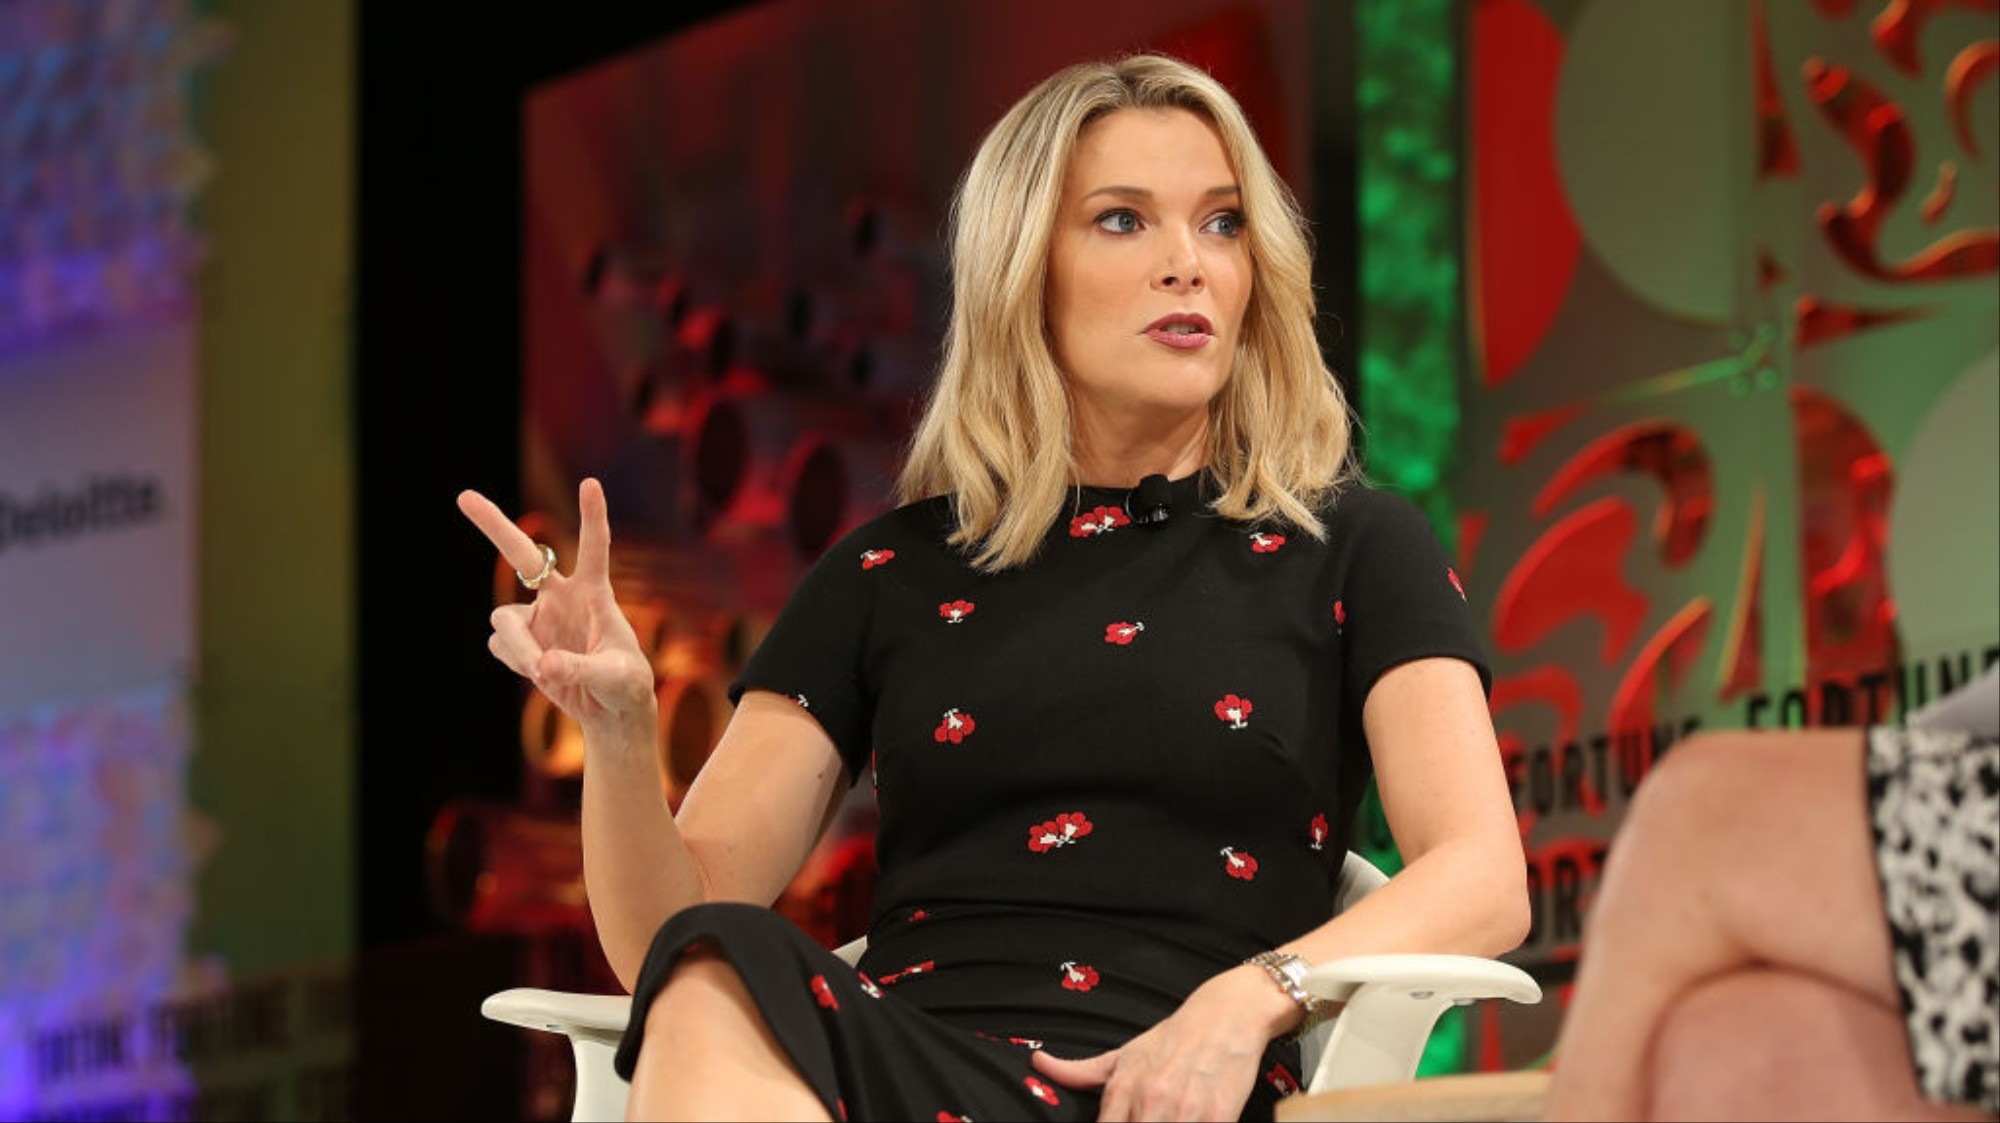 NBC Is No Hero for Firing Megyn Kelly - VICE